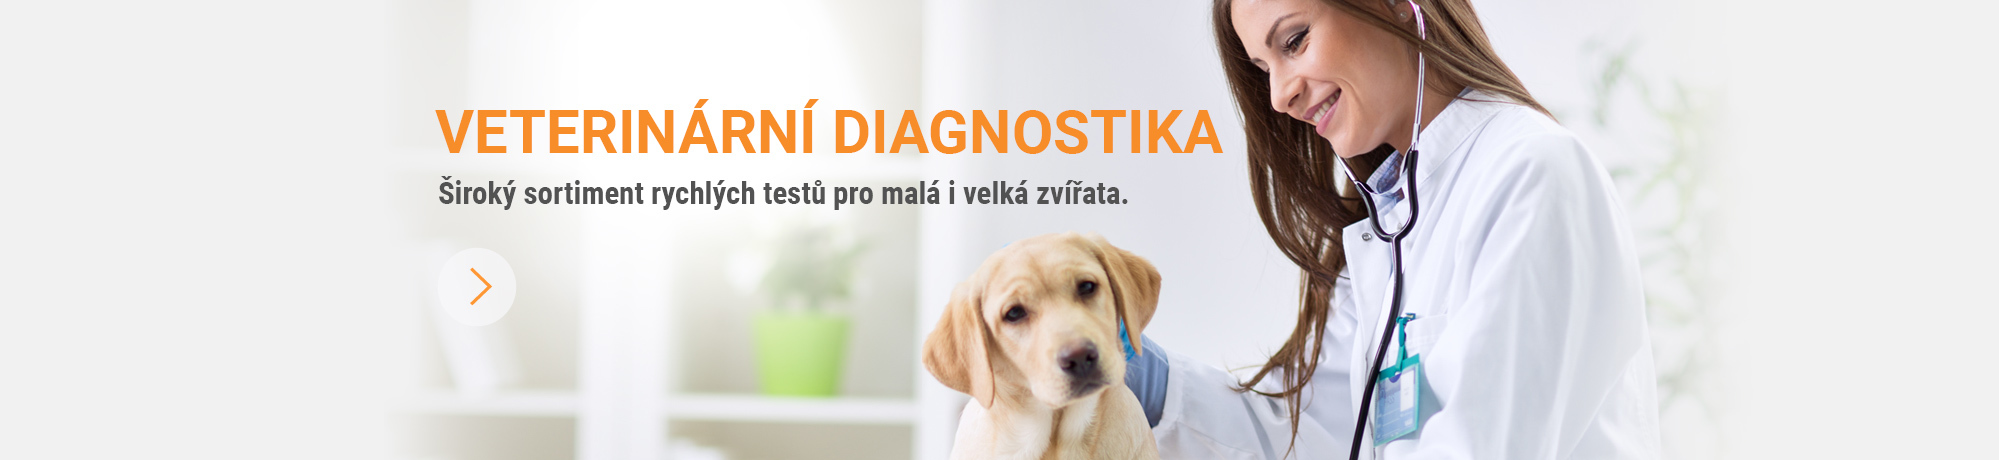 veter-diagnostika_1.jpg